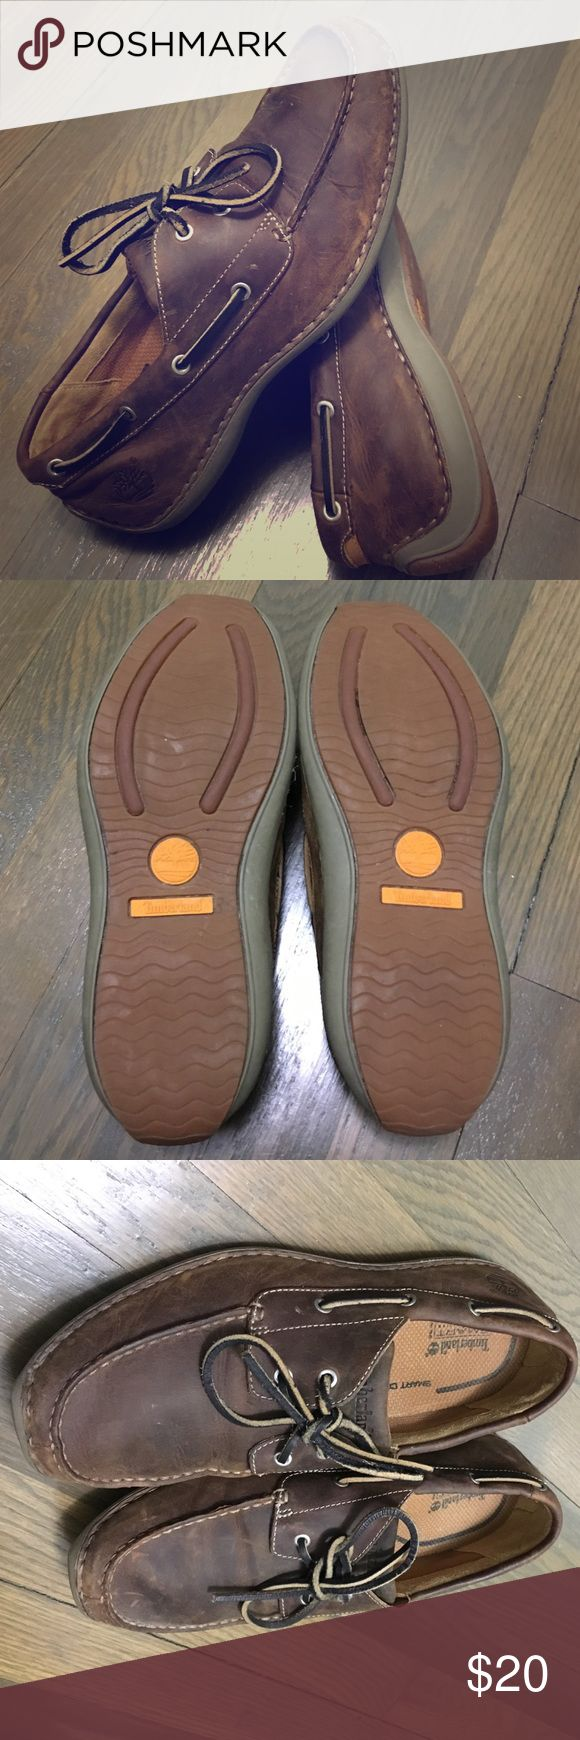 Timberland Earthkeepers Annapolis Boat shoes Timberland Earthkeepers Annapolis Boat shoes. Like new. Men's 8. Timberland Shoes Loafers & Slip-Ons